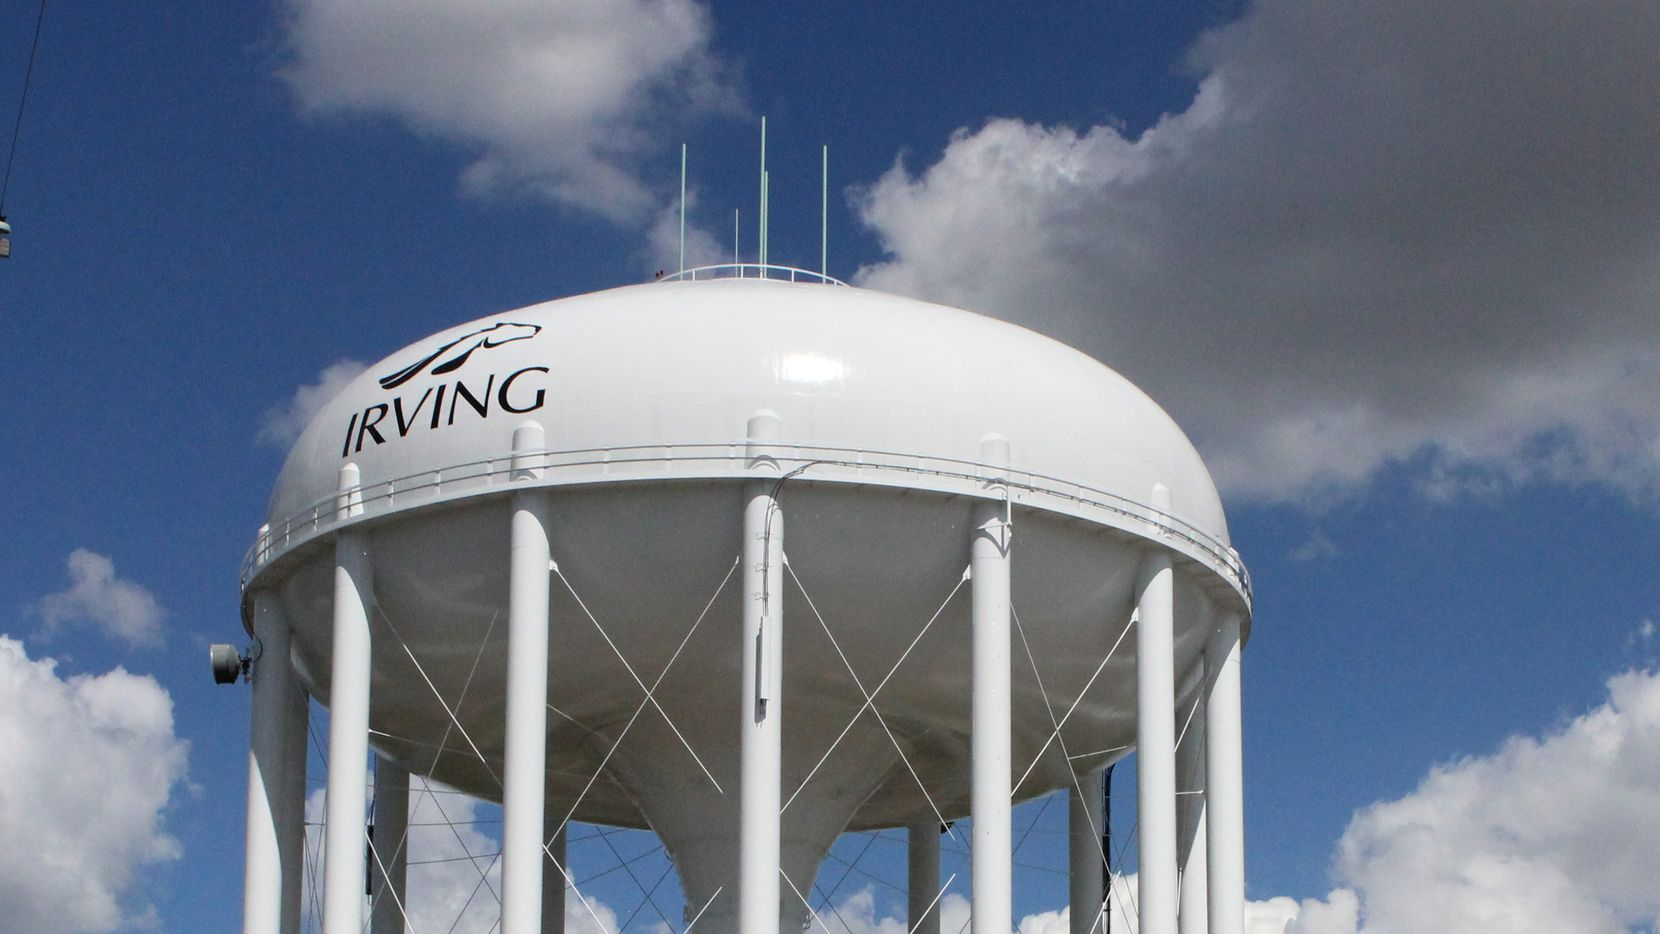 The City of Irving's water tower